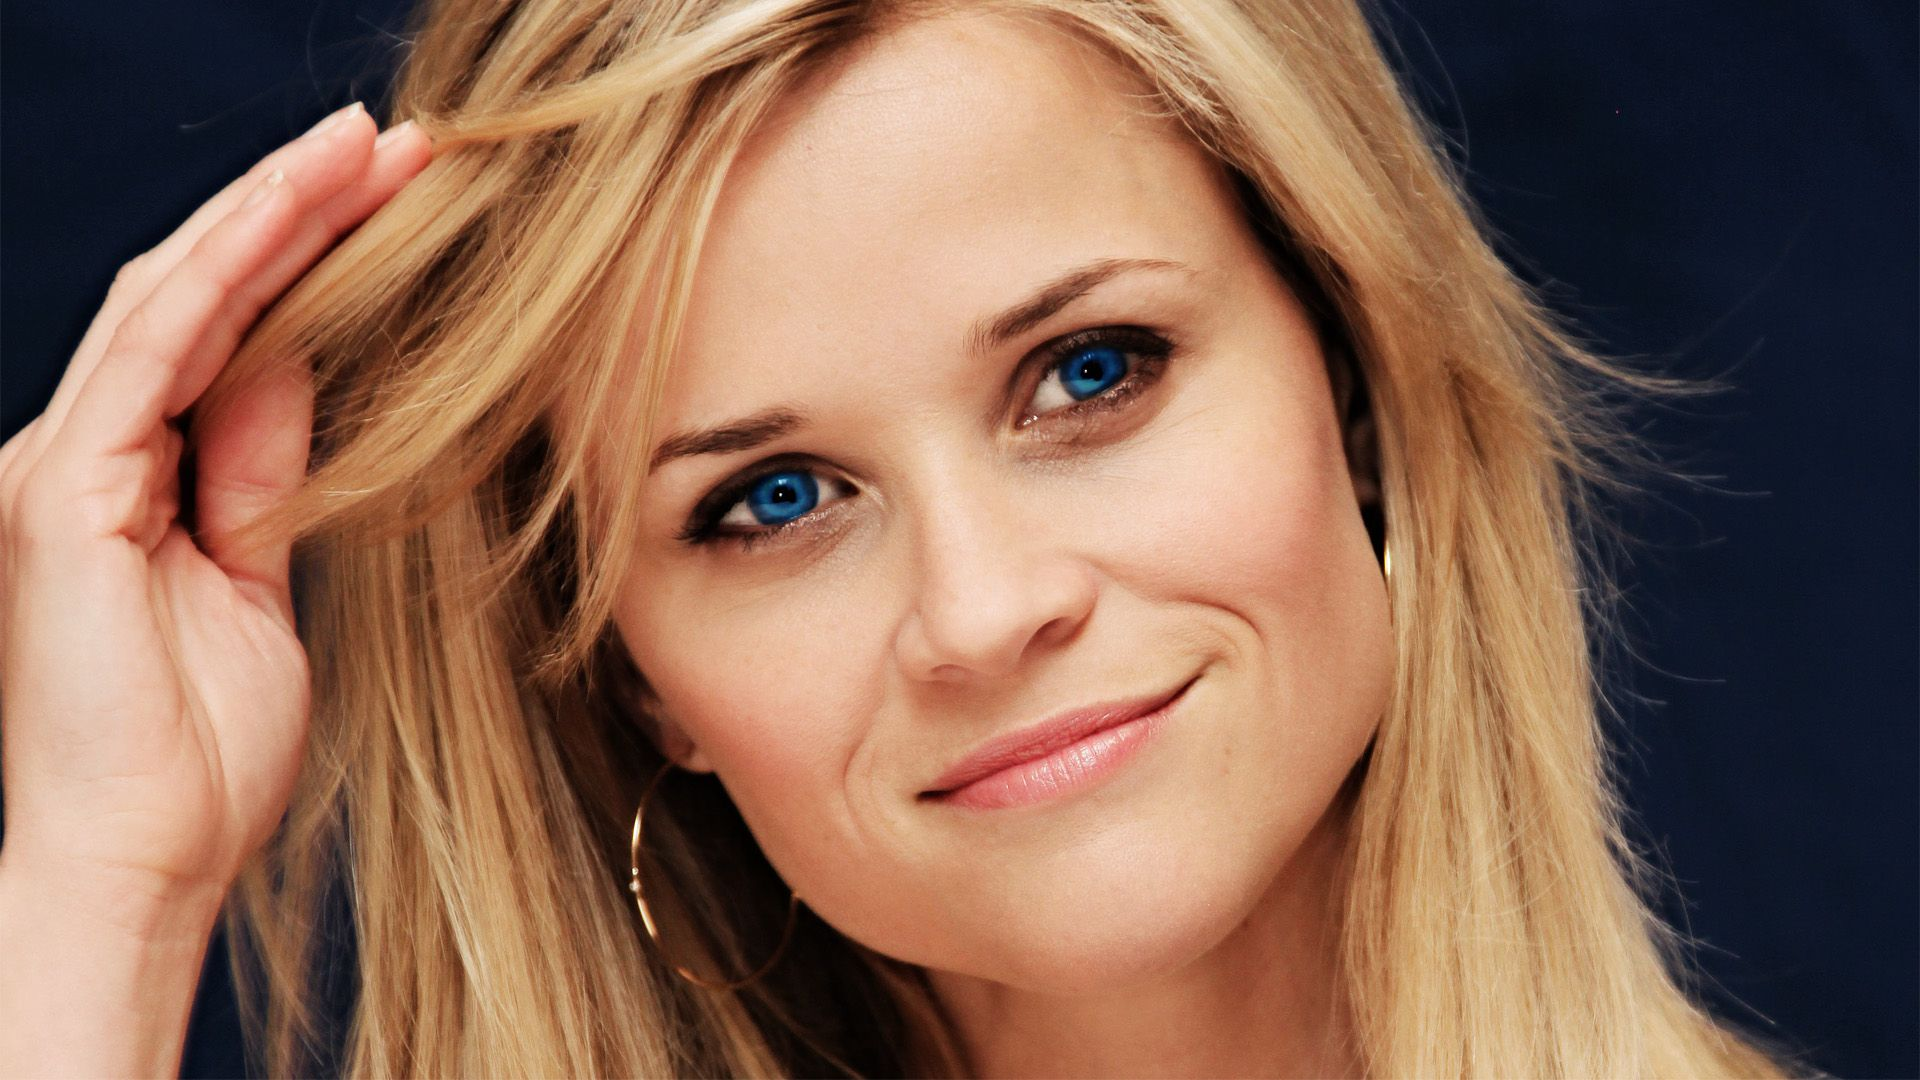 reese witherspoon | Reese Witherspoon nel nuovo film di Atom Egoyan · Pubblicato il ...